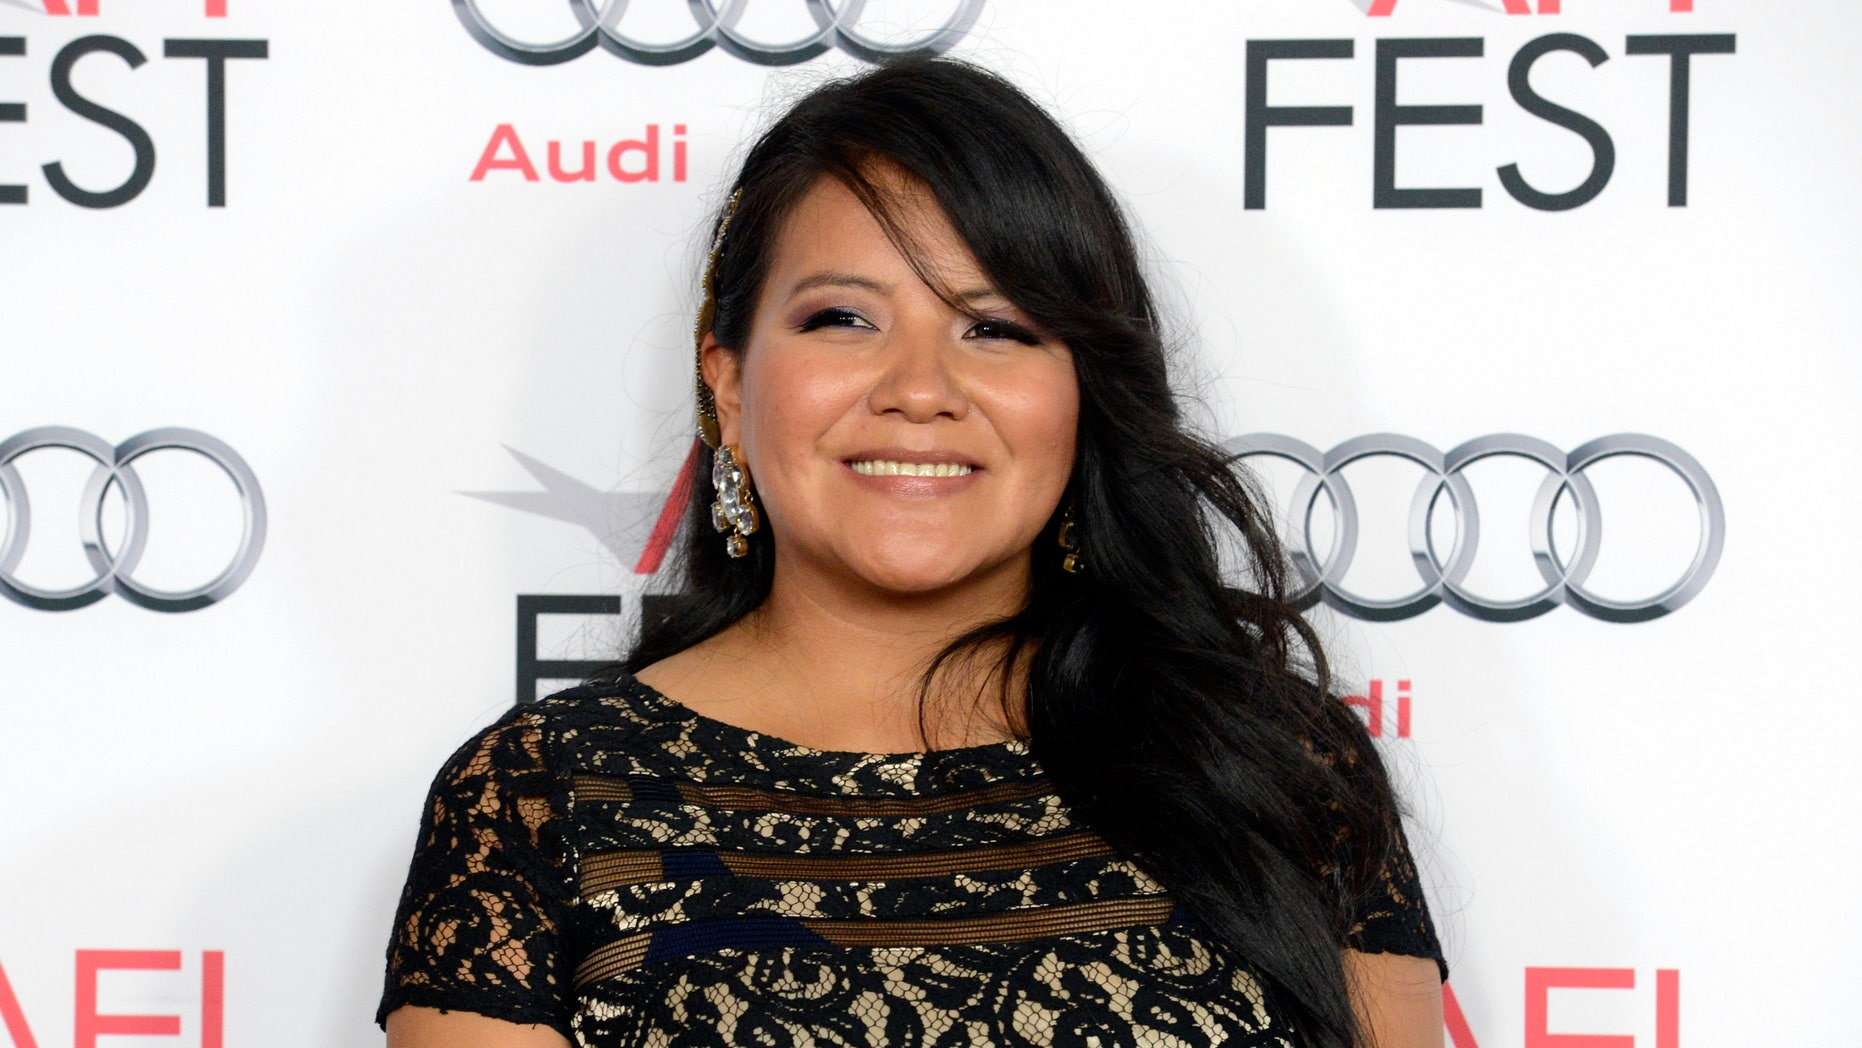 """November 8, 2013. Cast member Misty Upham attends a screening of the film """"August: Osage County"""" during AFI Fest 2013 in Los Angeles."""